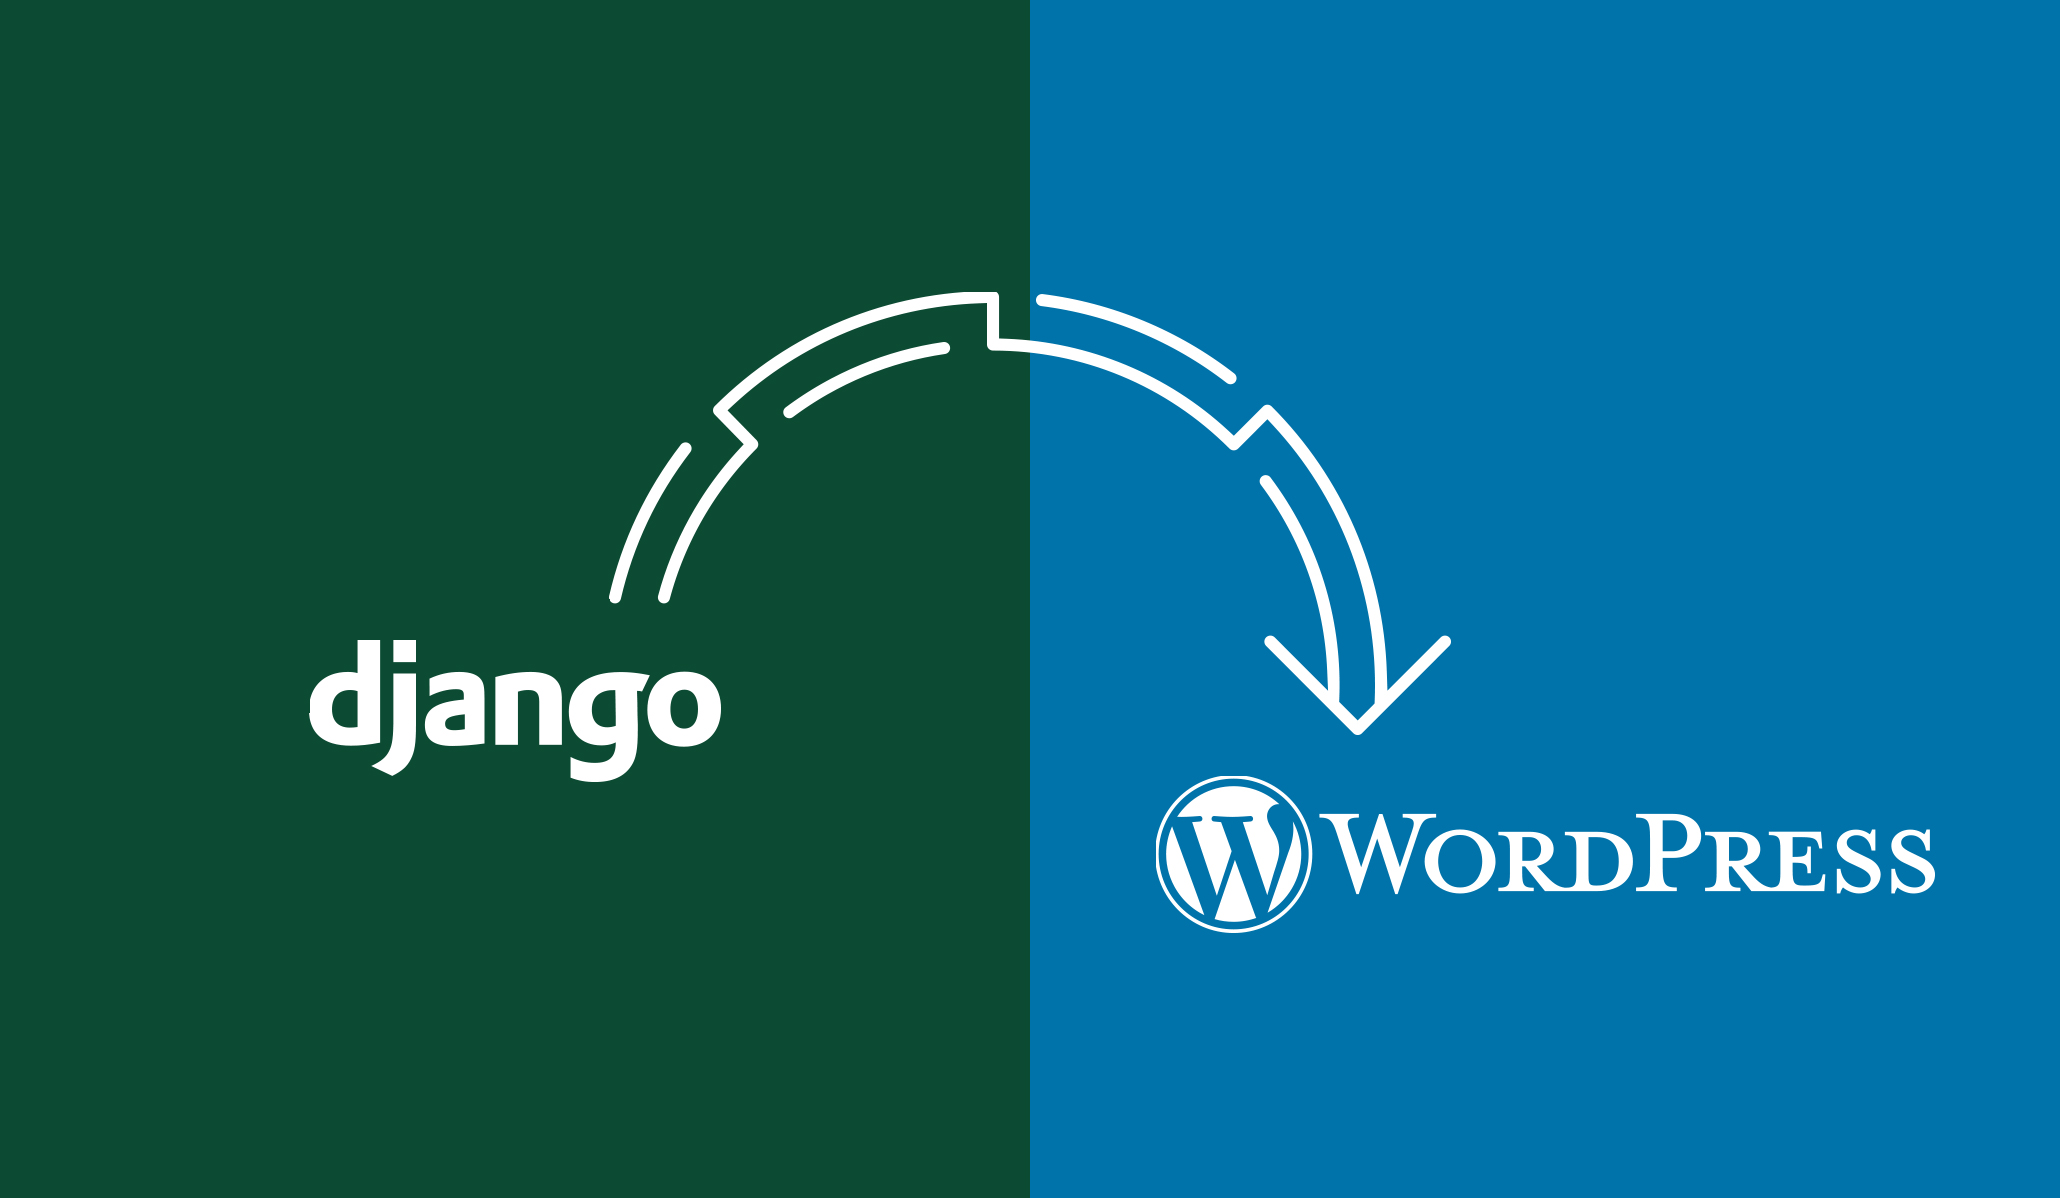 5 Things to keep in Mind Before Migrating Django to WordPress